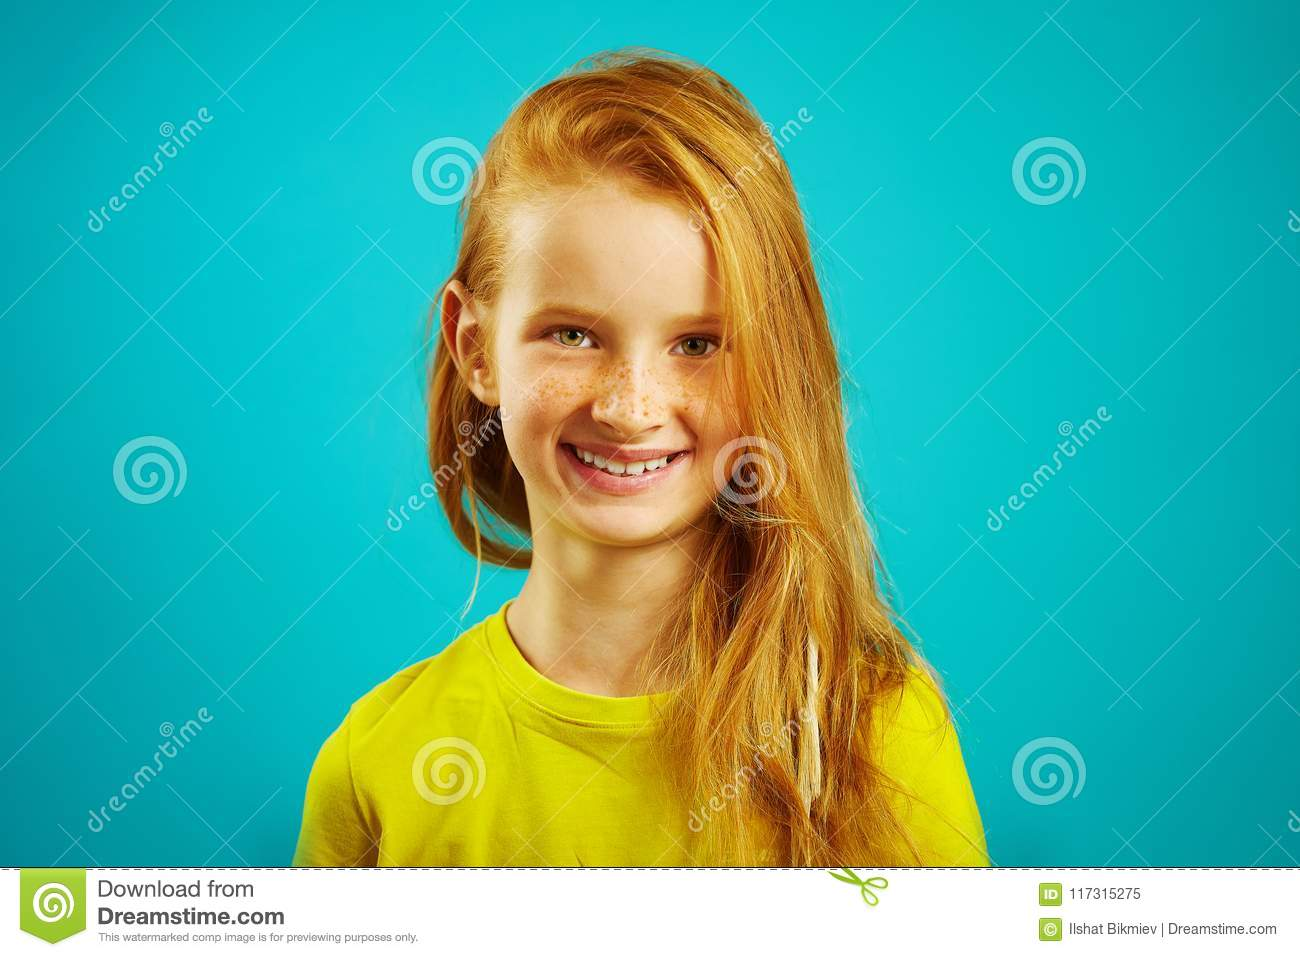 Portrait of children girl with cute smile, has red hair and beautiful freckles, dressed in bright t-shirt, child shot on